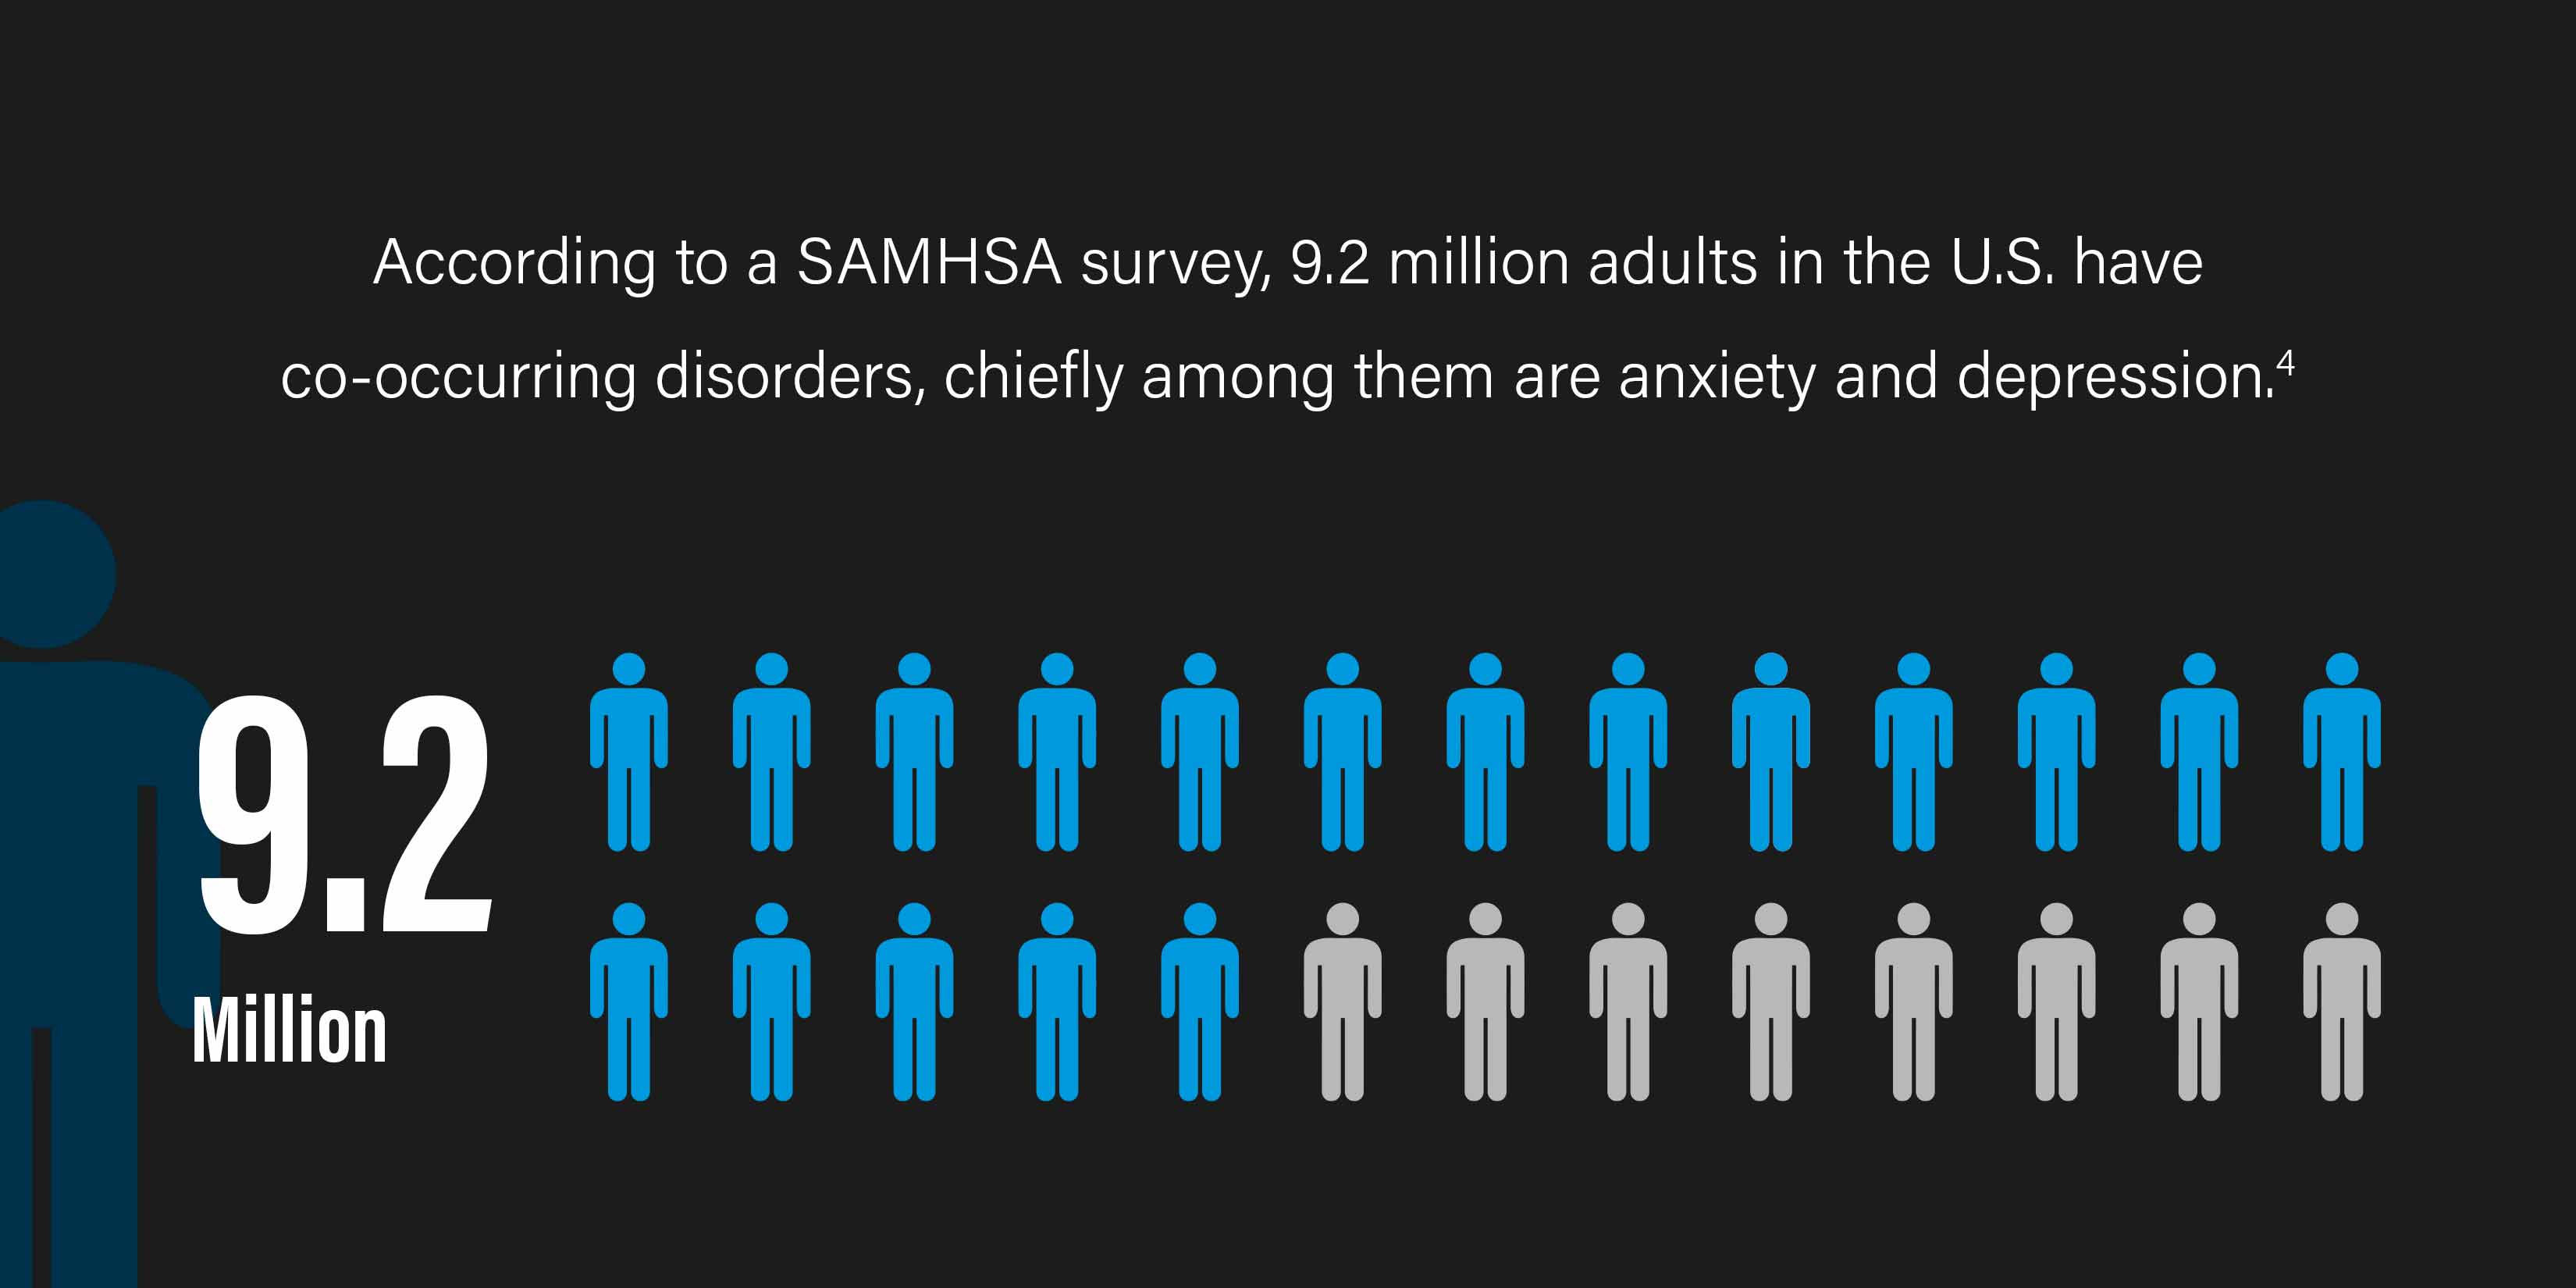 According to a SAMHSA survey, 9.2 million adults in the U.S. have co-occurring disorders, chiefly among them are anxiety and depression.[4]